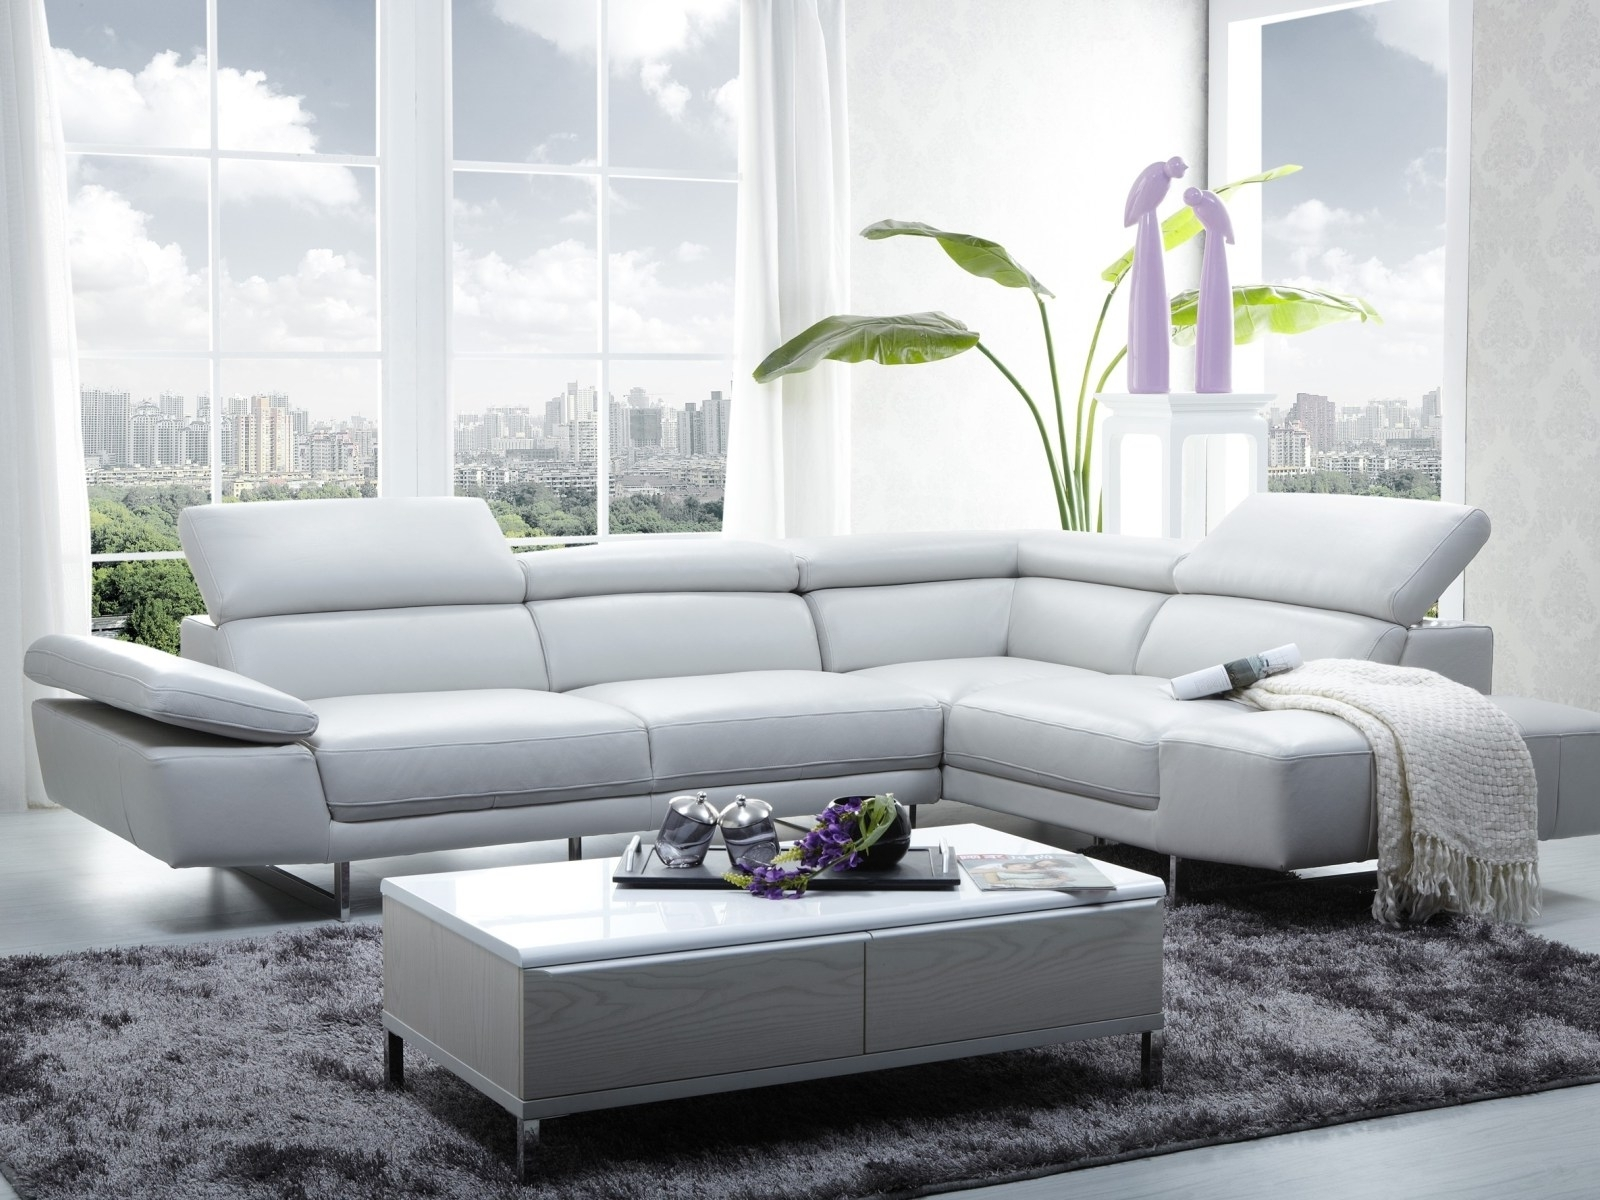 Trendy Sectional Sofas That Can Be Rearranged Regarding ▻ Sofa : 15 3058702 Poster P 1 A Modular Sofa That Can Rearrange (View 4 of 20)